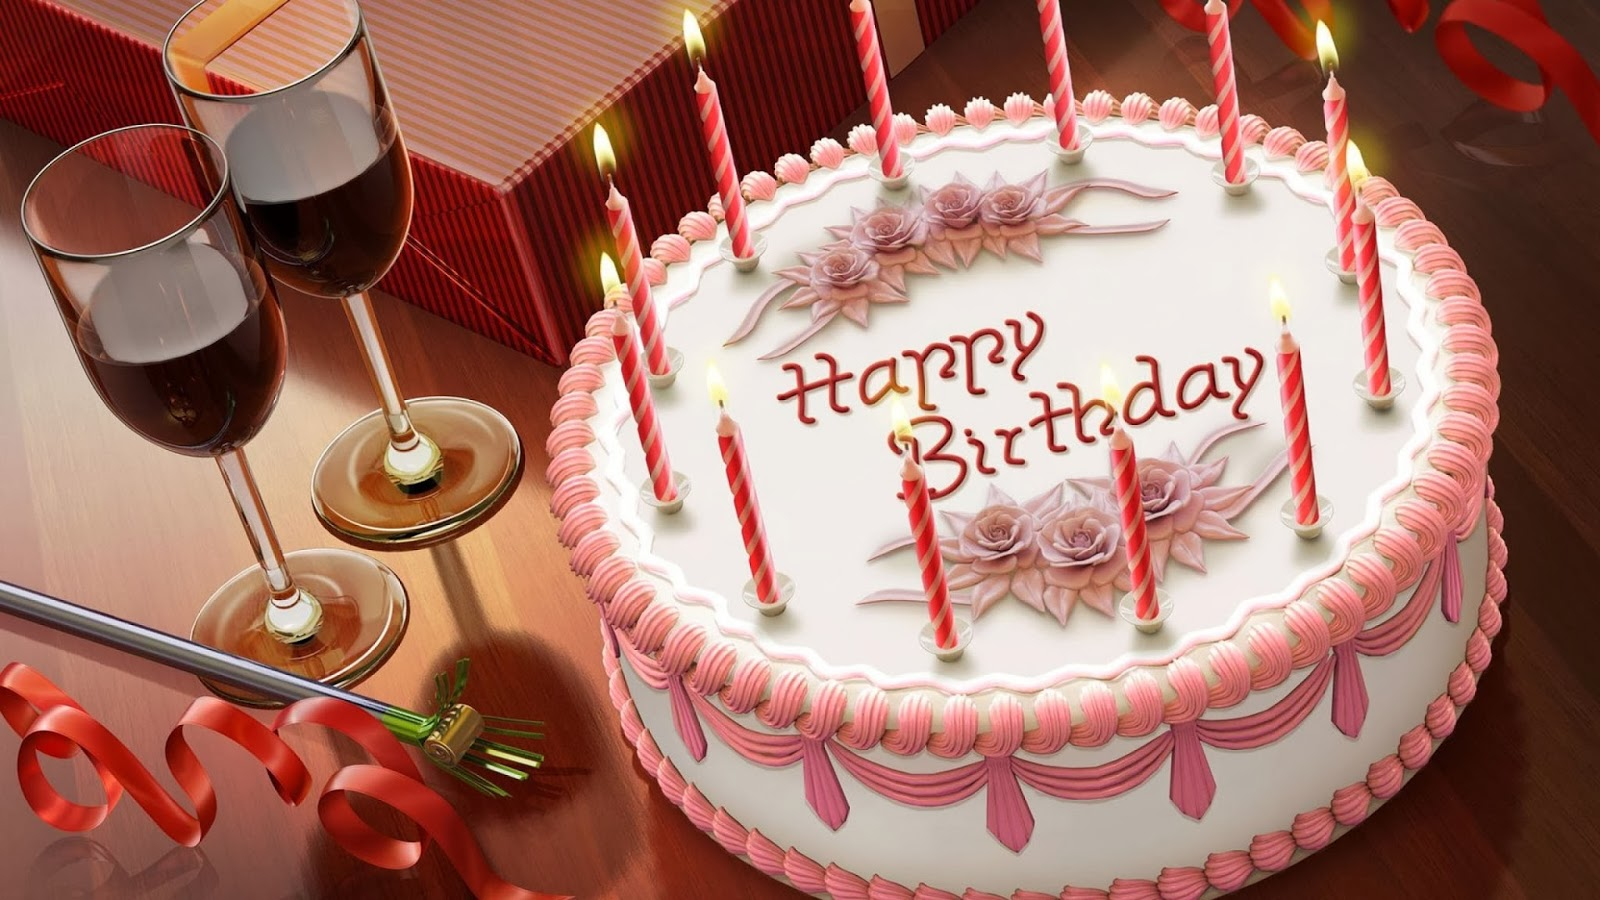 birthday wishes wallpapers free download ; Birthday-cake+(1)